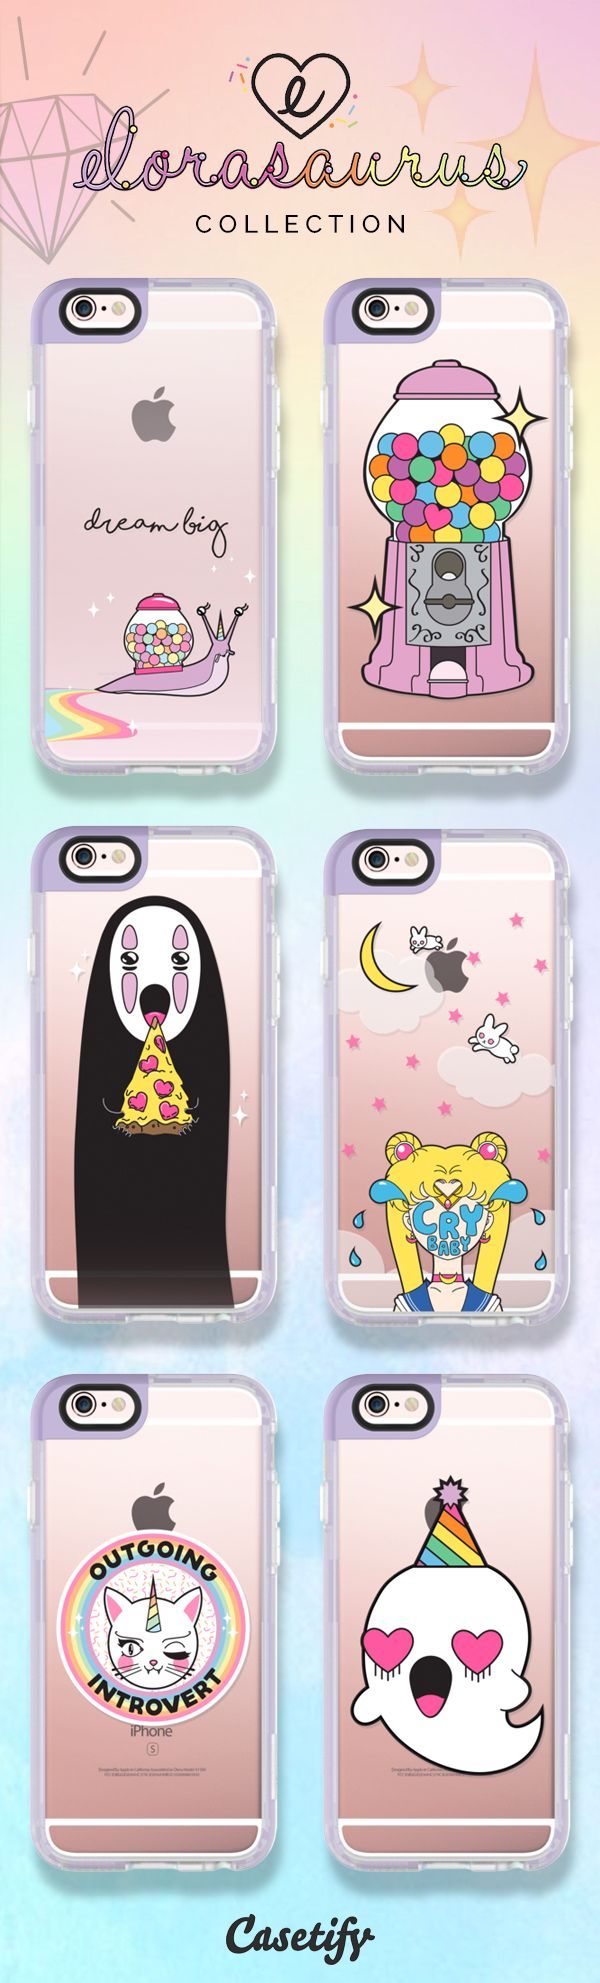 Check out these cute iPhone 6 Case designs by @elorasaurus here >>> https://www.casetify.com/elorasaurus/collection   @casetify